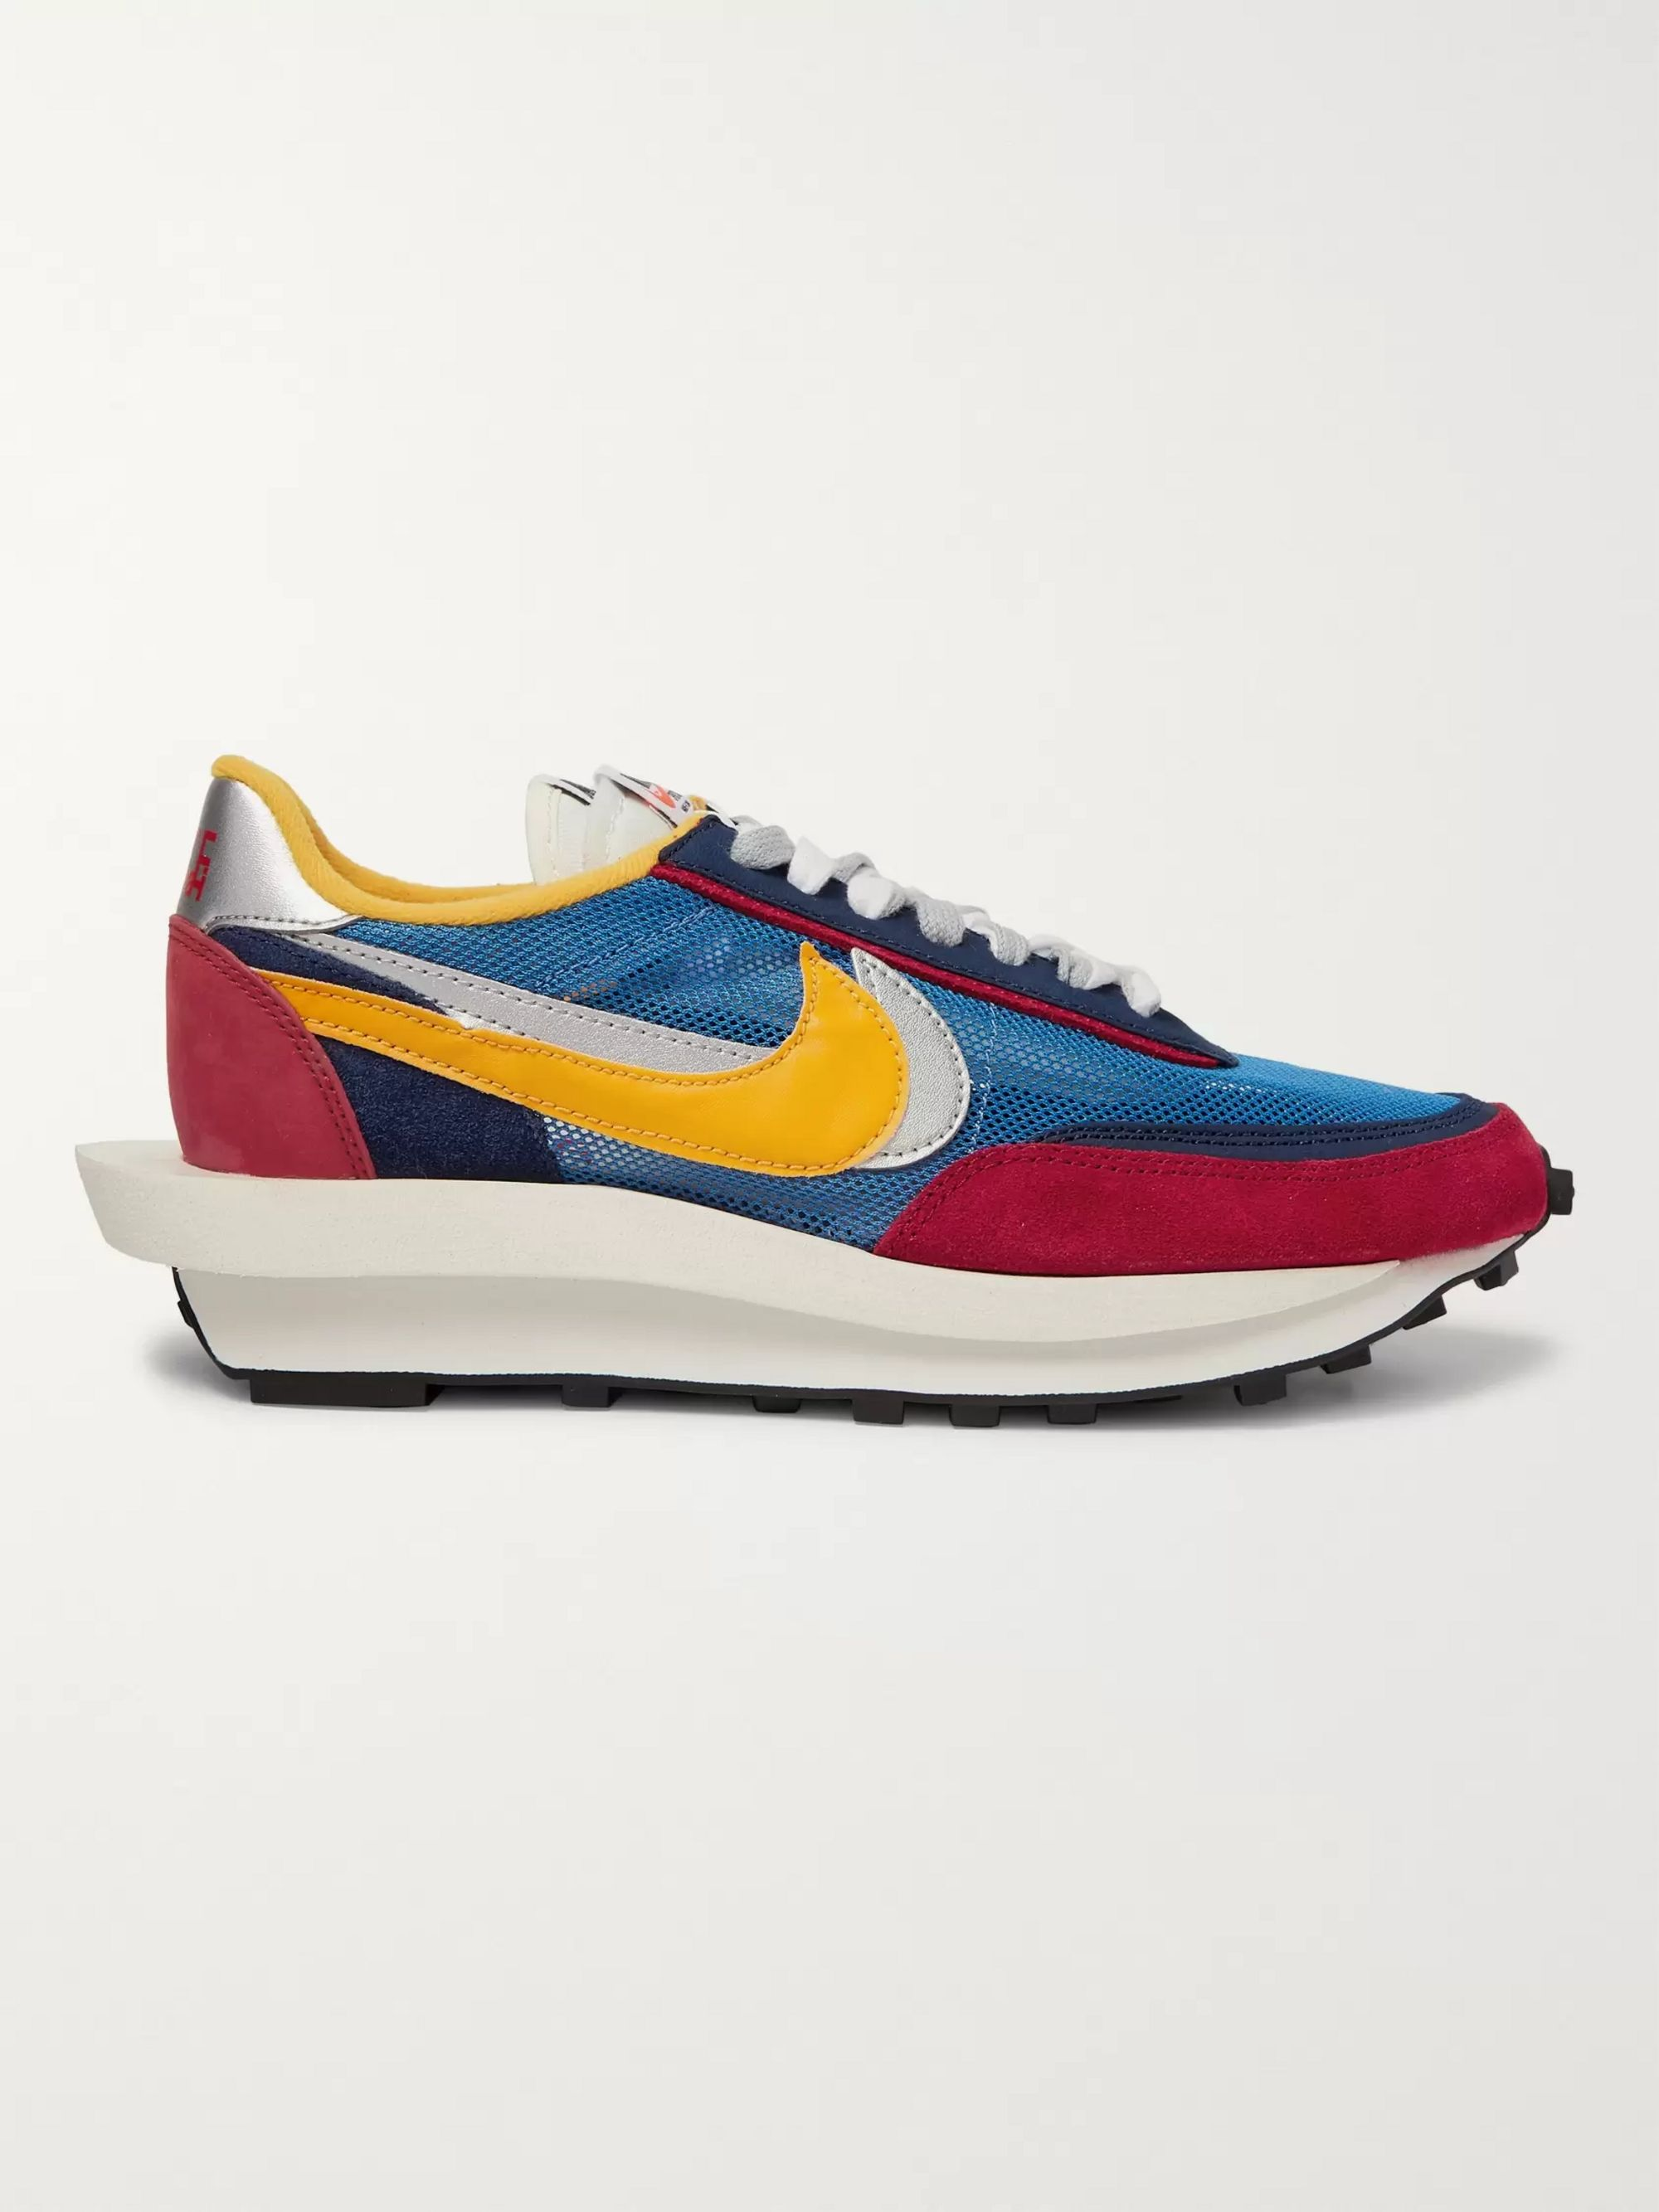 Nike + Sacai LDV Waffle Mesh, Suede and Leather Sneakers